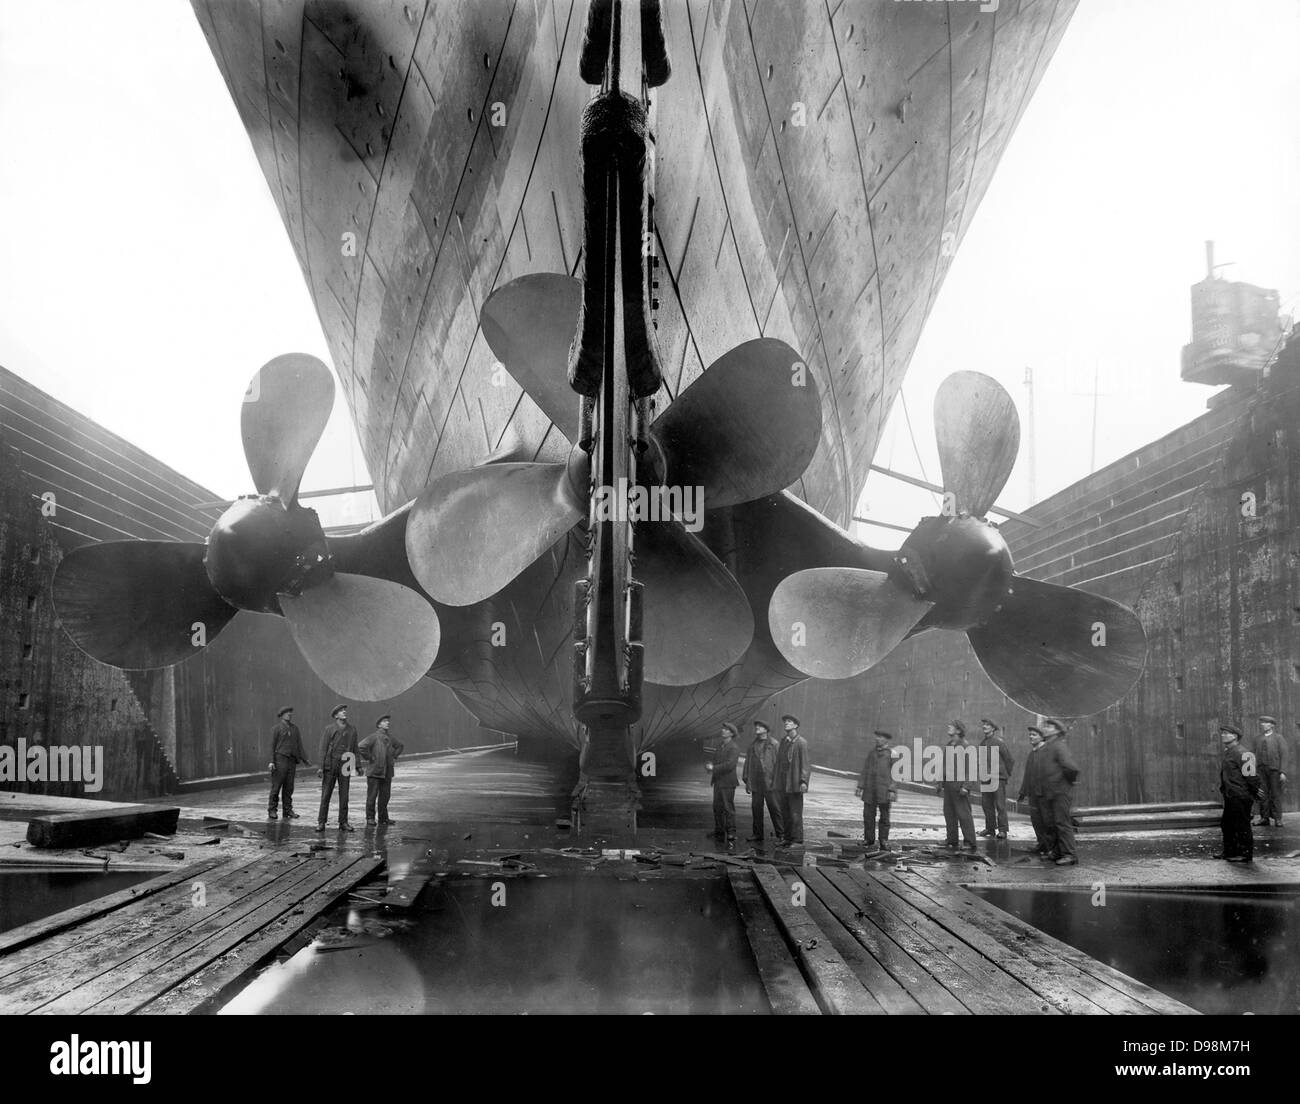 The Propellers of the Titanic in Dry Dock in Belfast, Ireland, before its' launch in 1912 - Stock Image